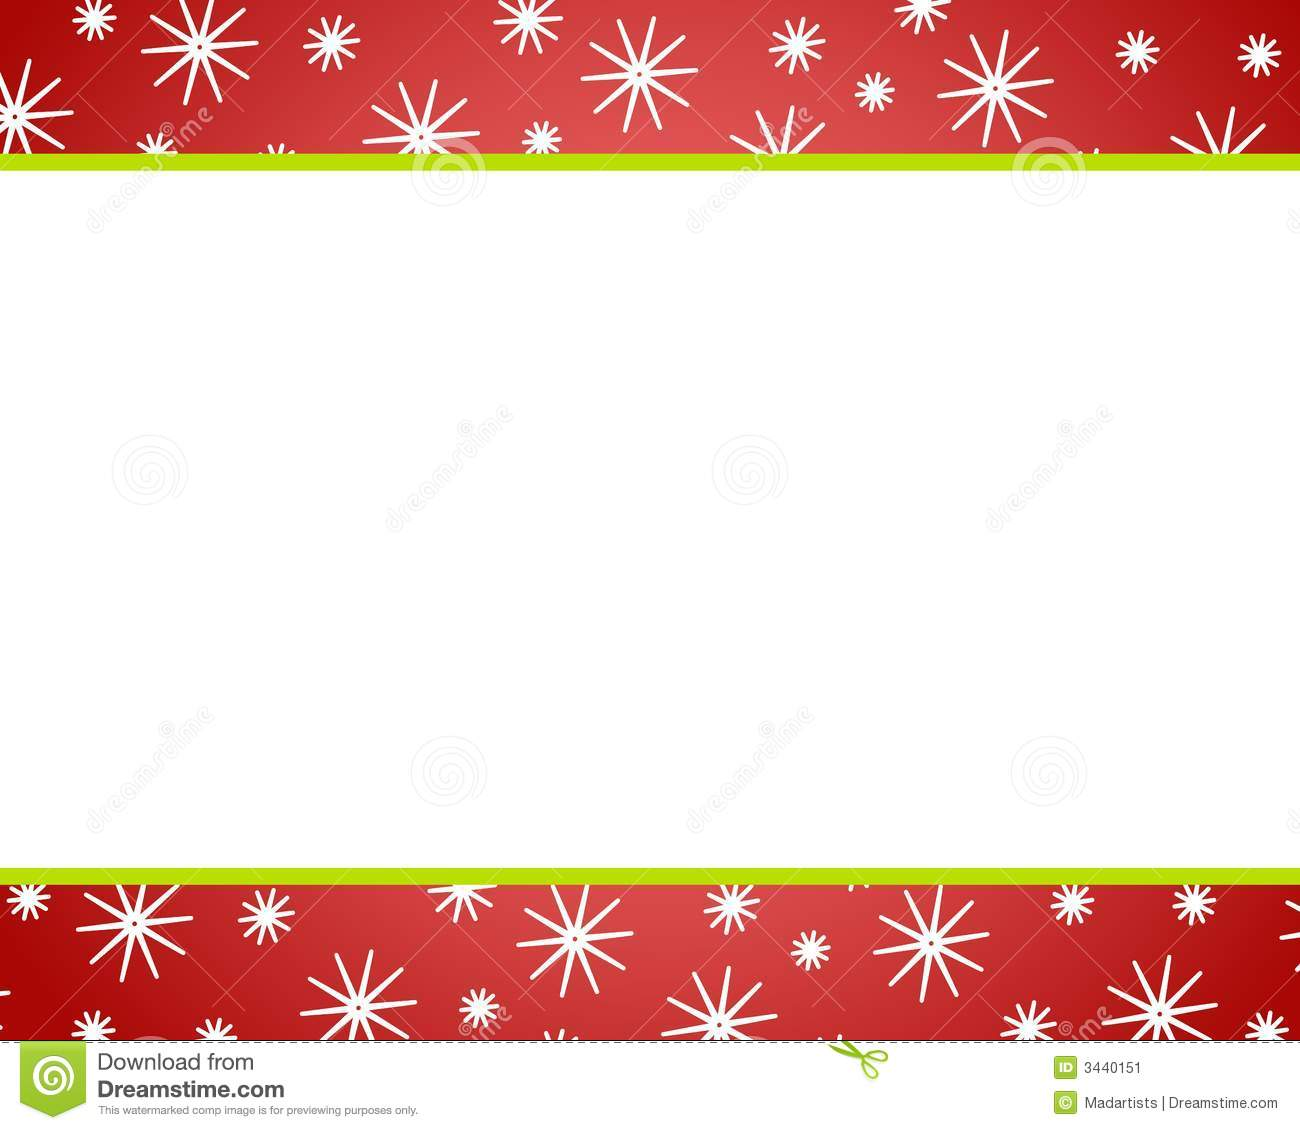 Free December Borders Cliparts, Download Free Clip Art, Free.